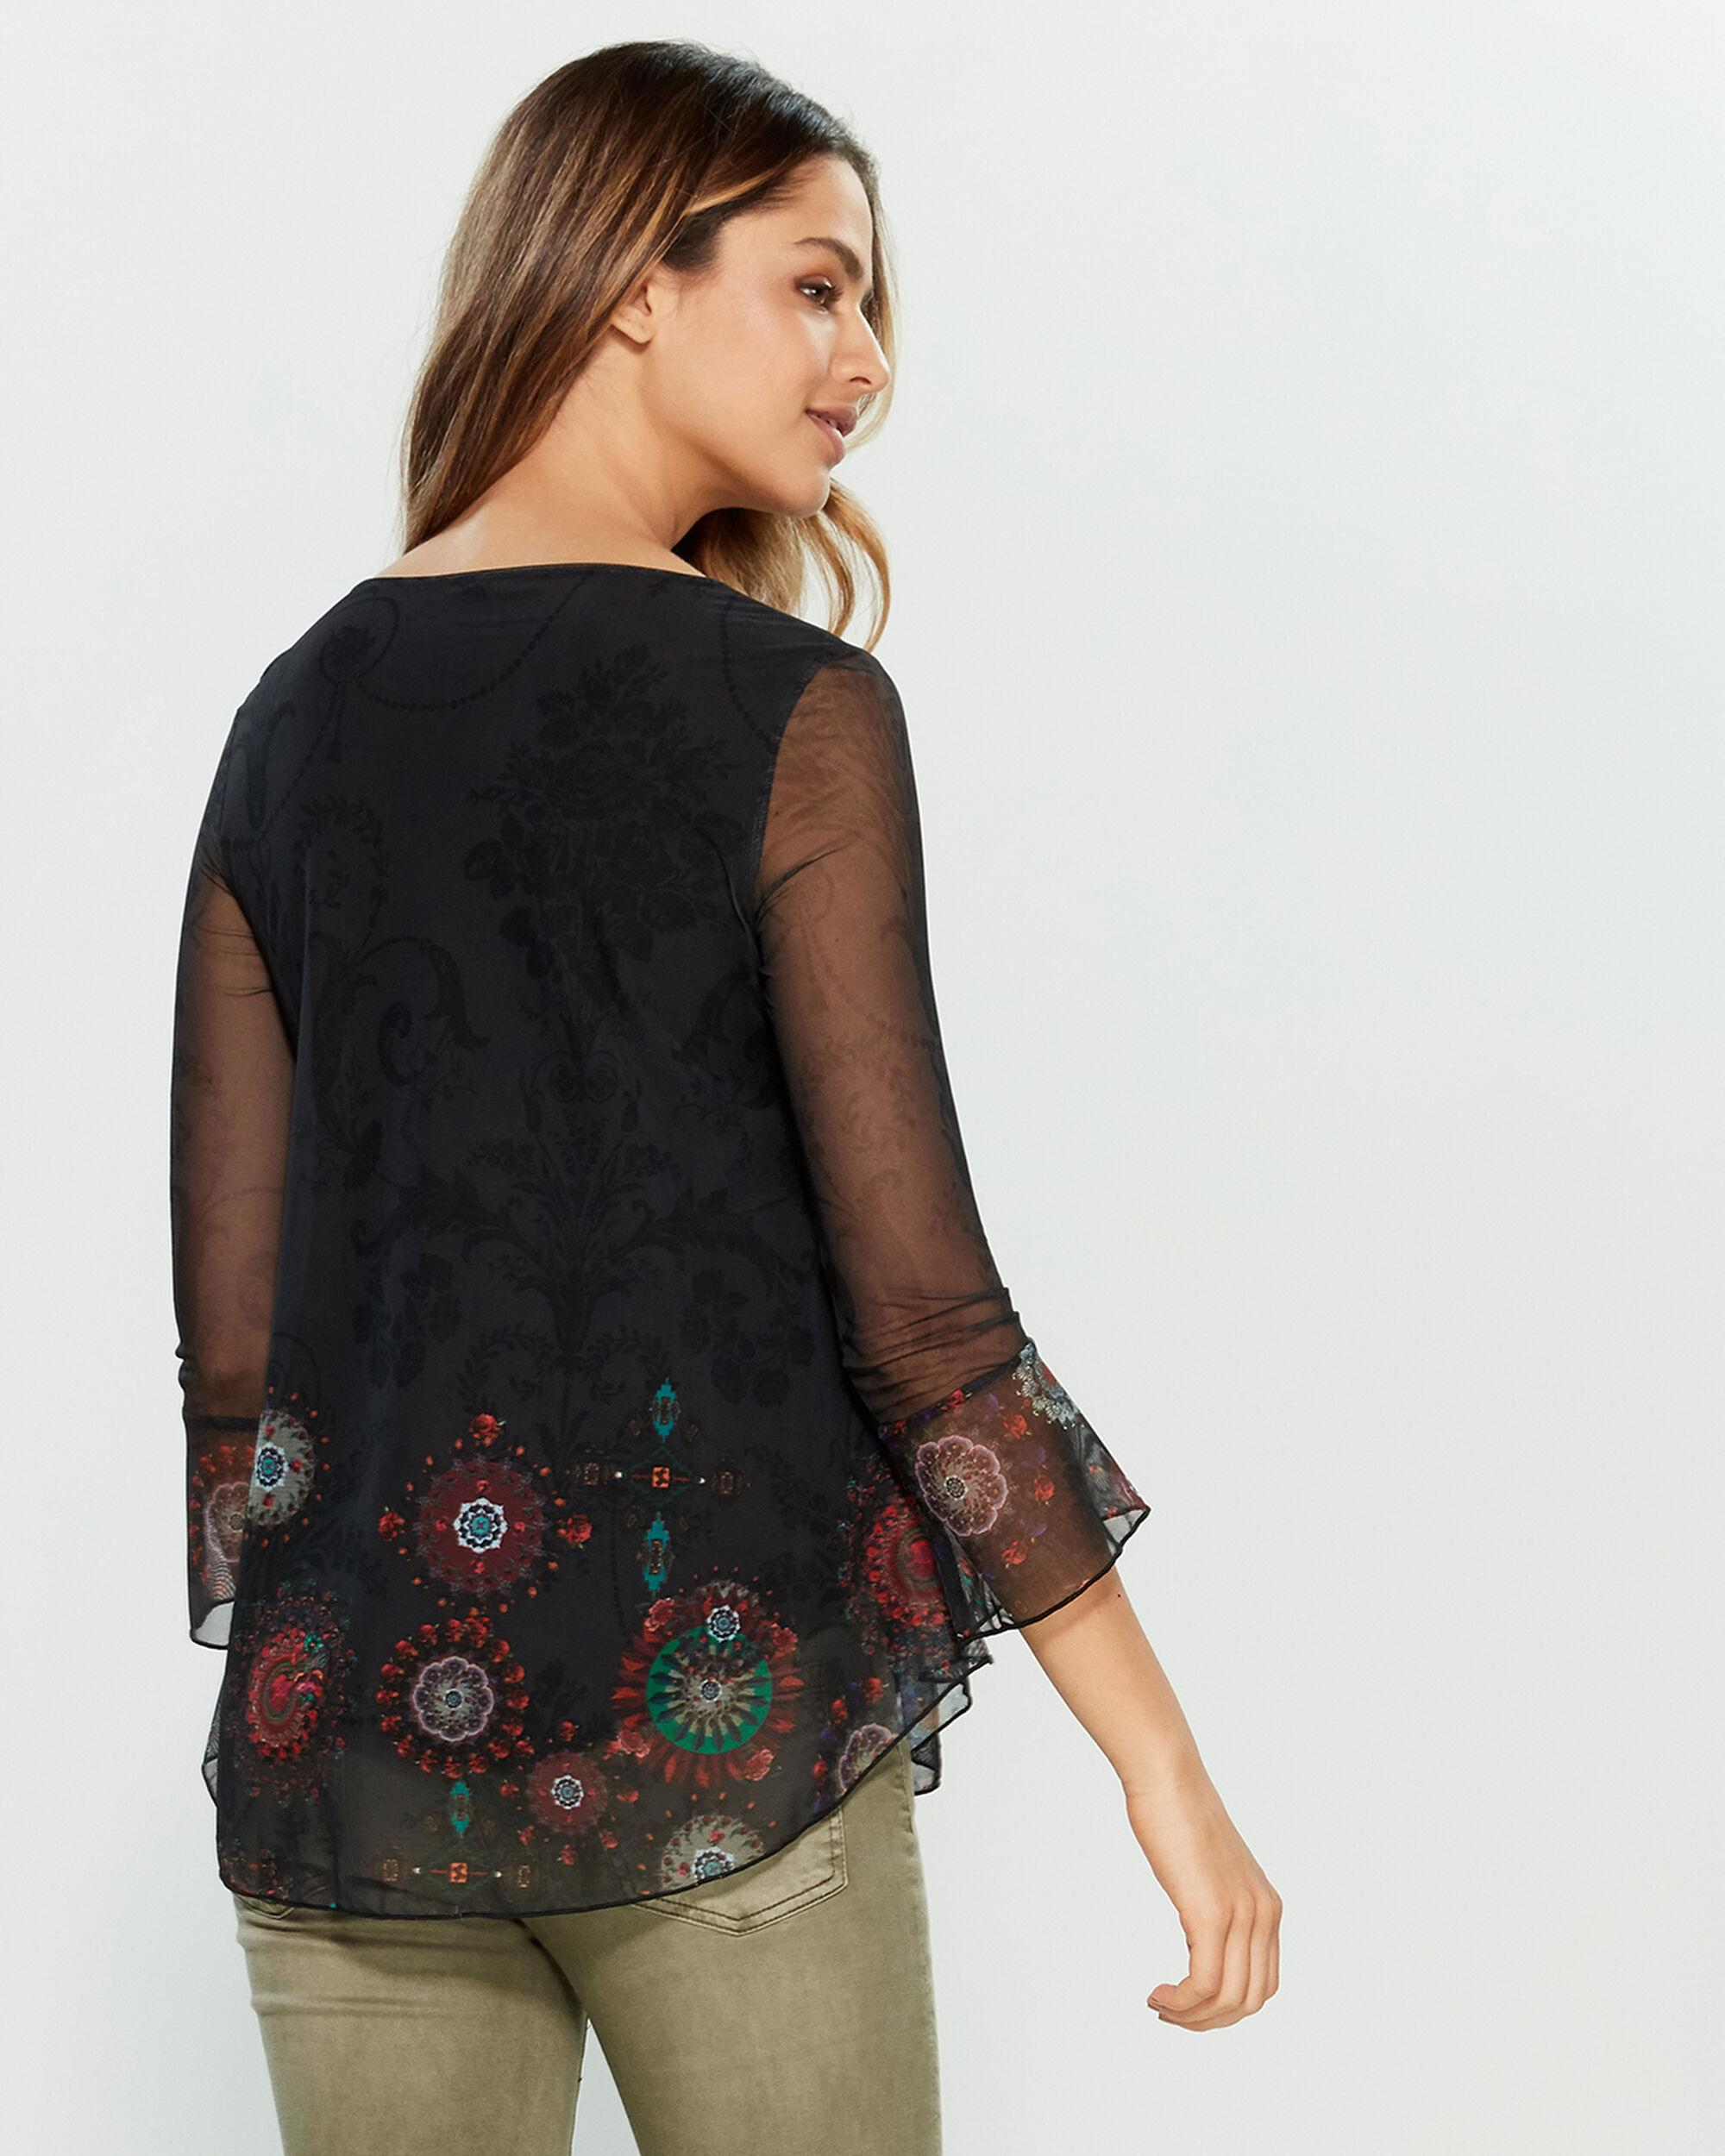 b23b7485e Desigual Brule Floral Top in Black - Lyst